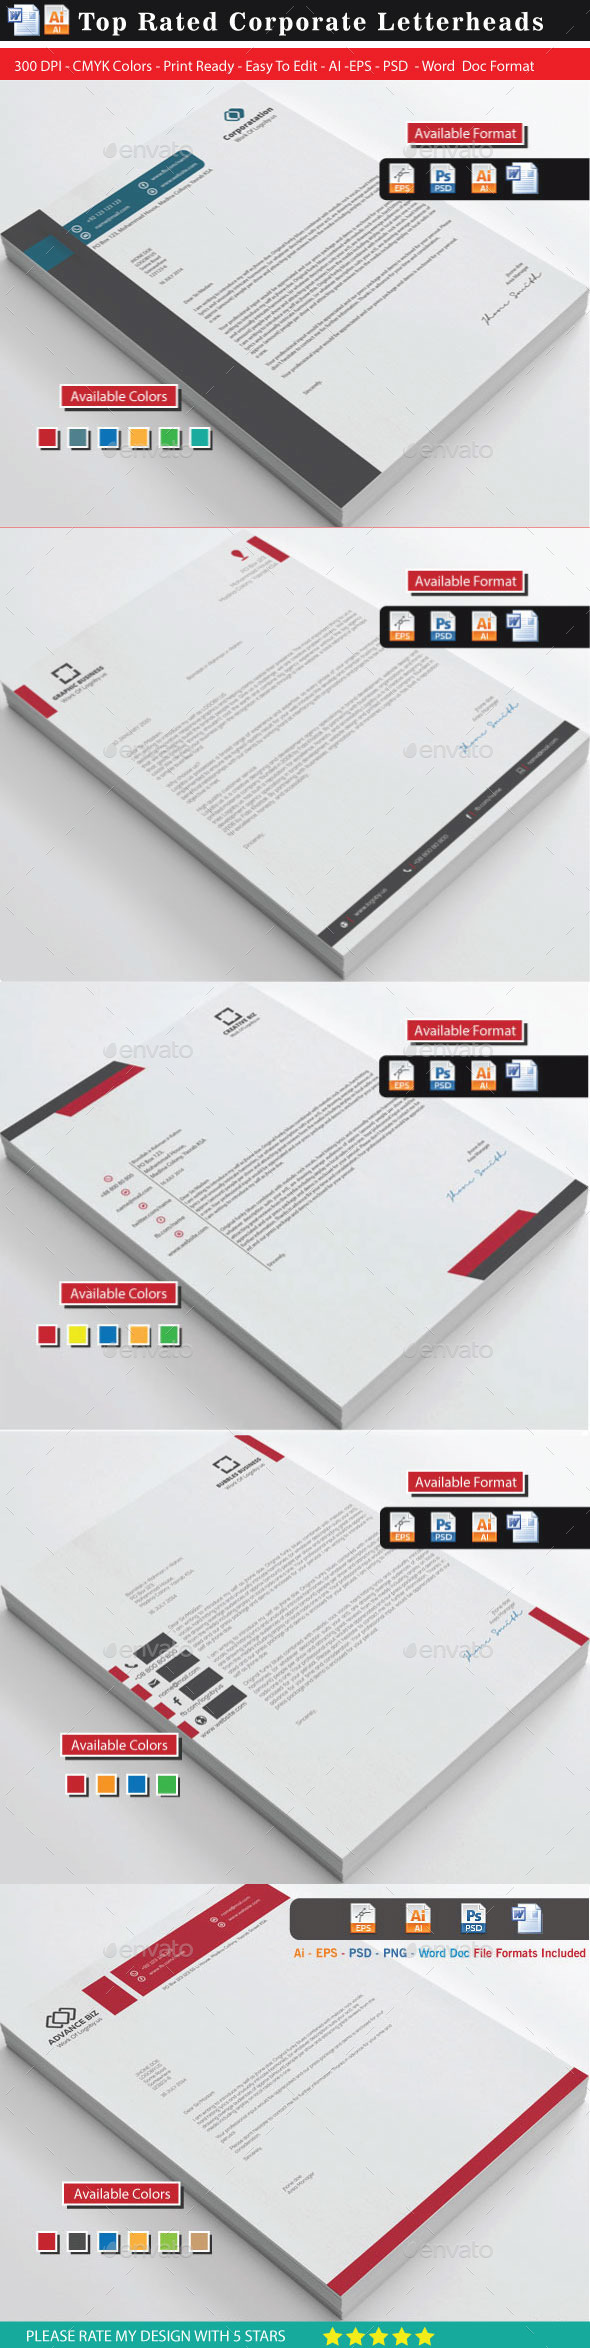 GraphicRiver 94 Top Rated Corporate Letterhead Bundle 1 10105914